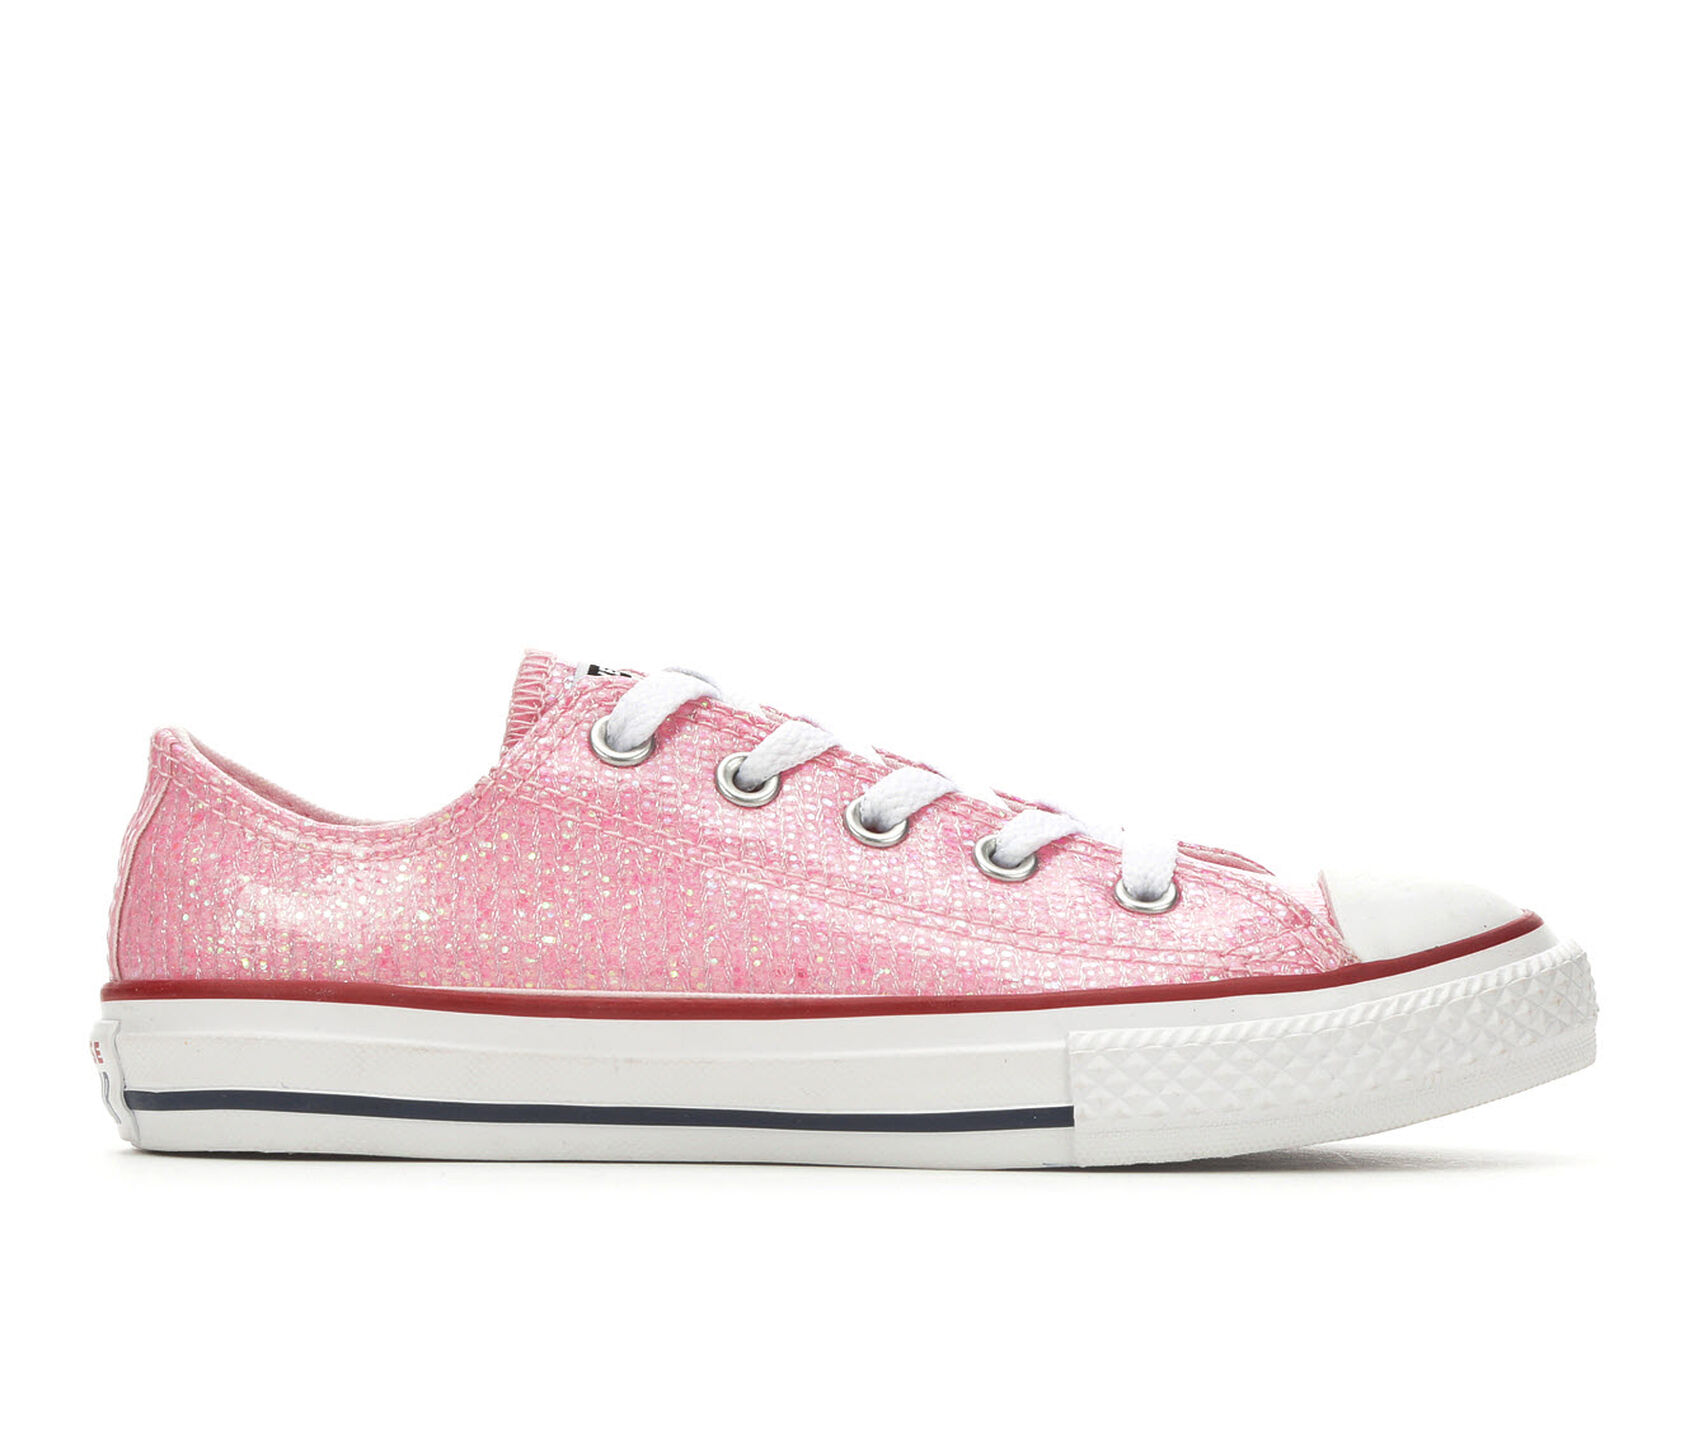 54cf41b56680 ... Converse Little Kid & Big Kid CTAS Sparkle Ox Sneakers. Previous